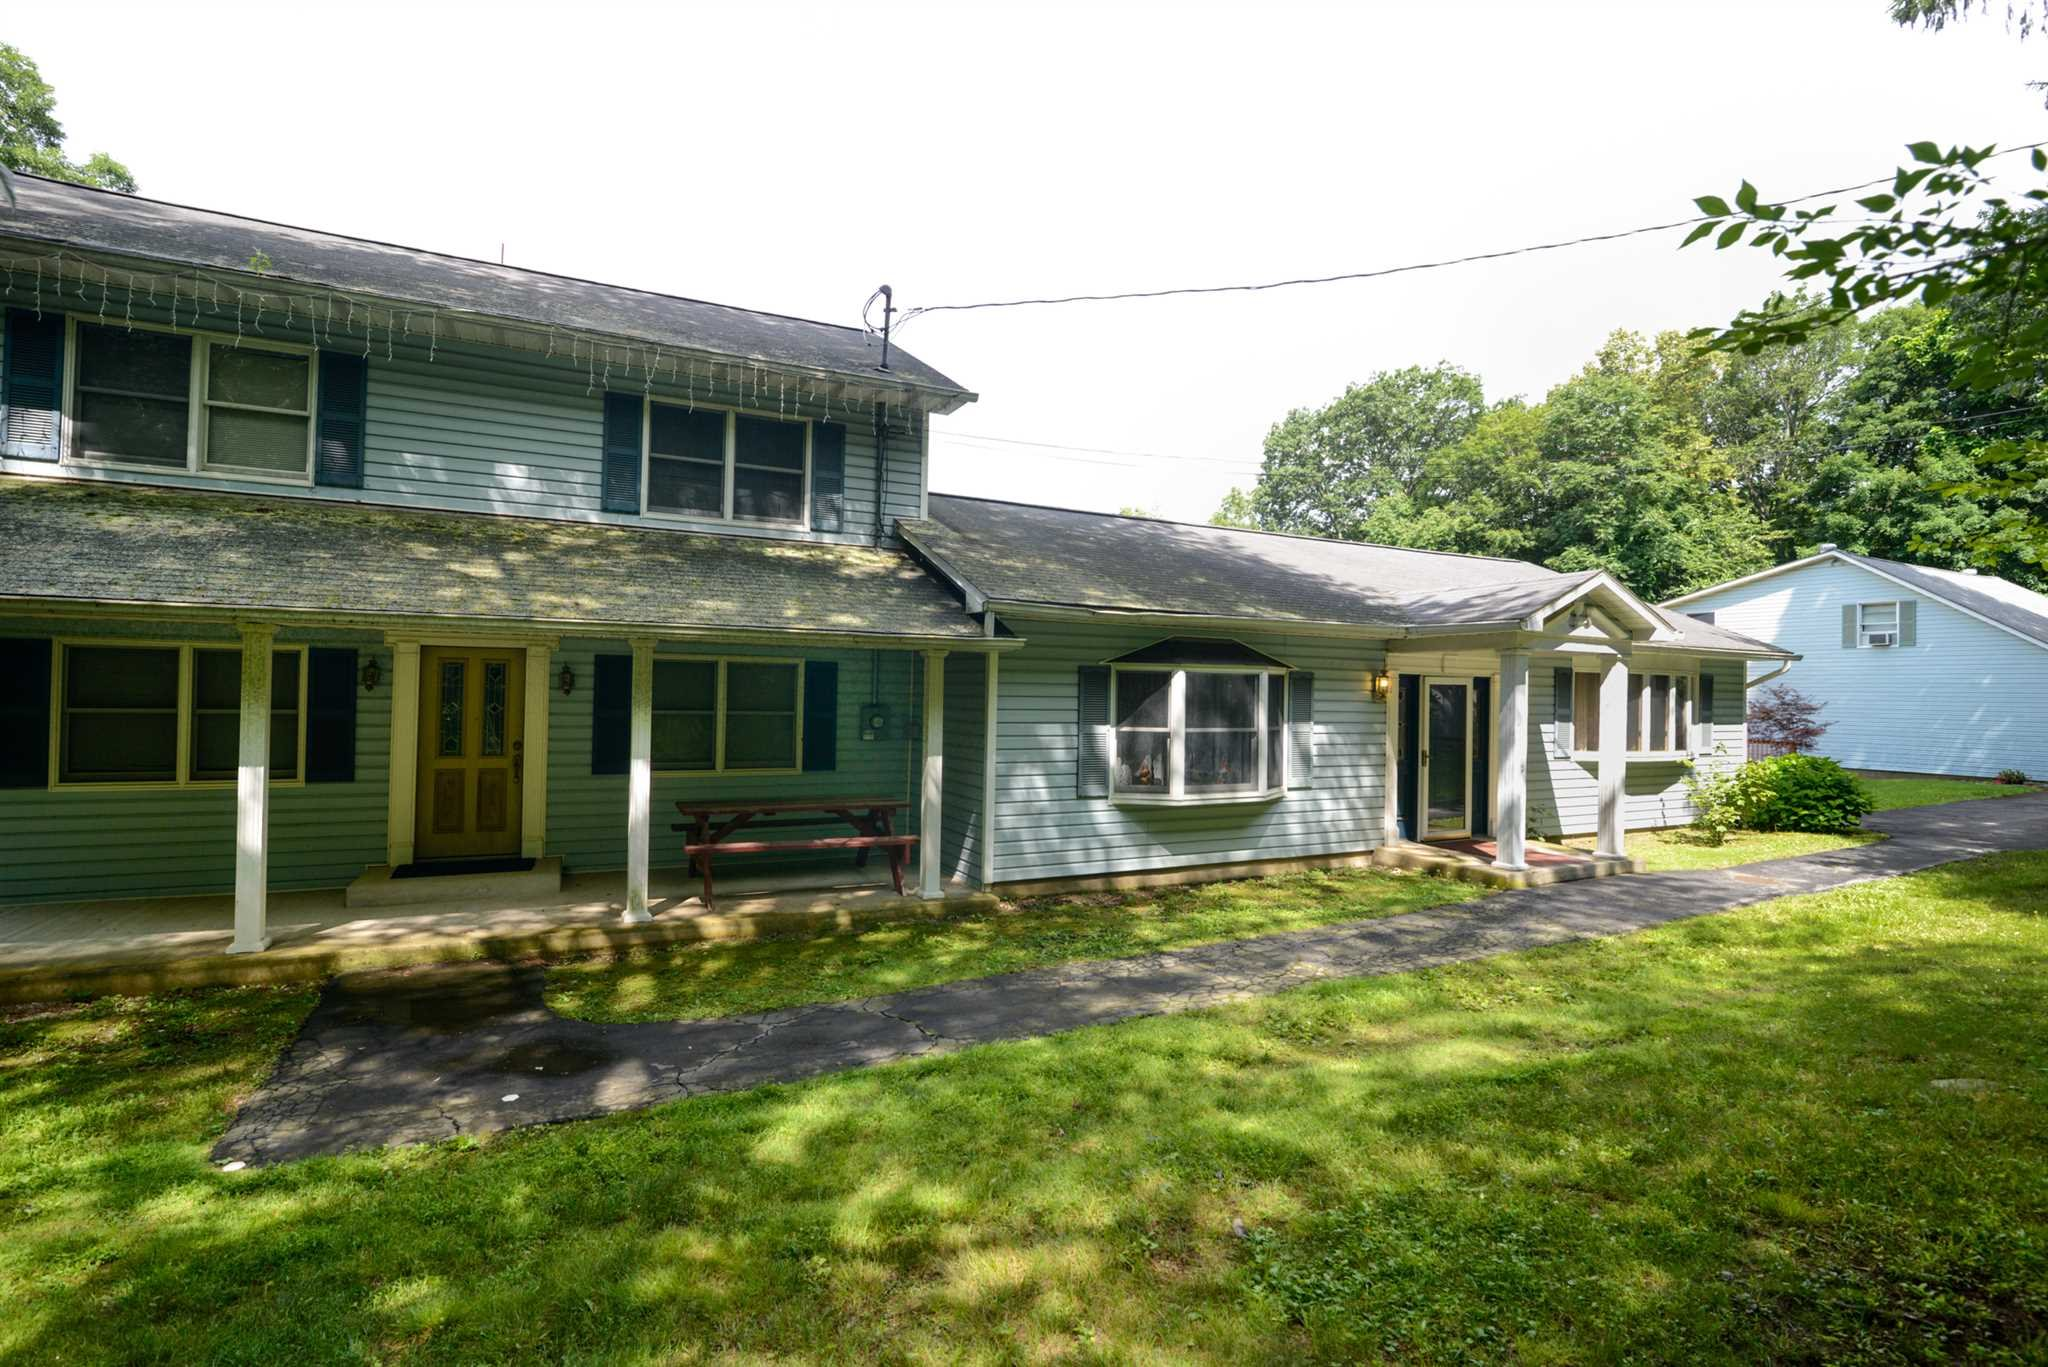 Single Family Home for Sale at 5 COUNTY LINE 5 COUNTY LINE Somers, New York 10541 United States